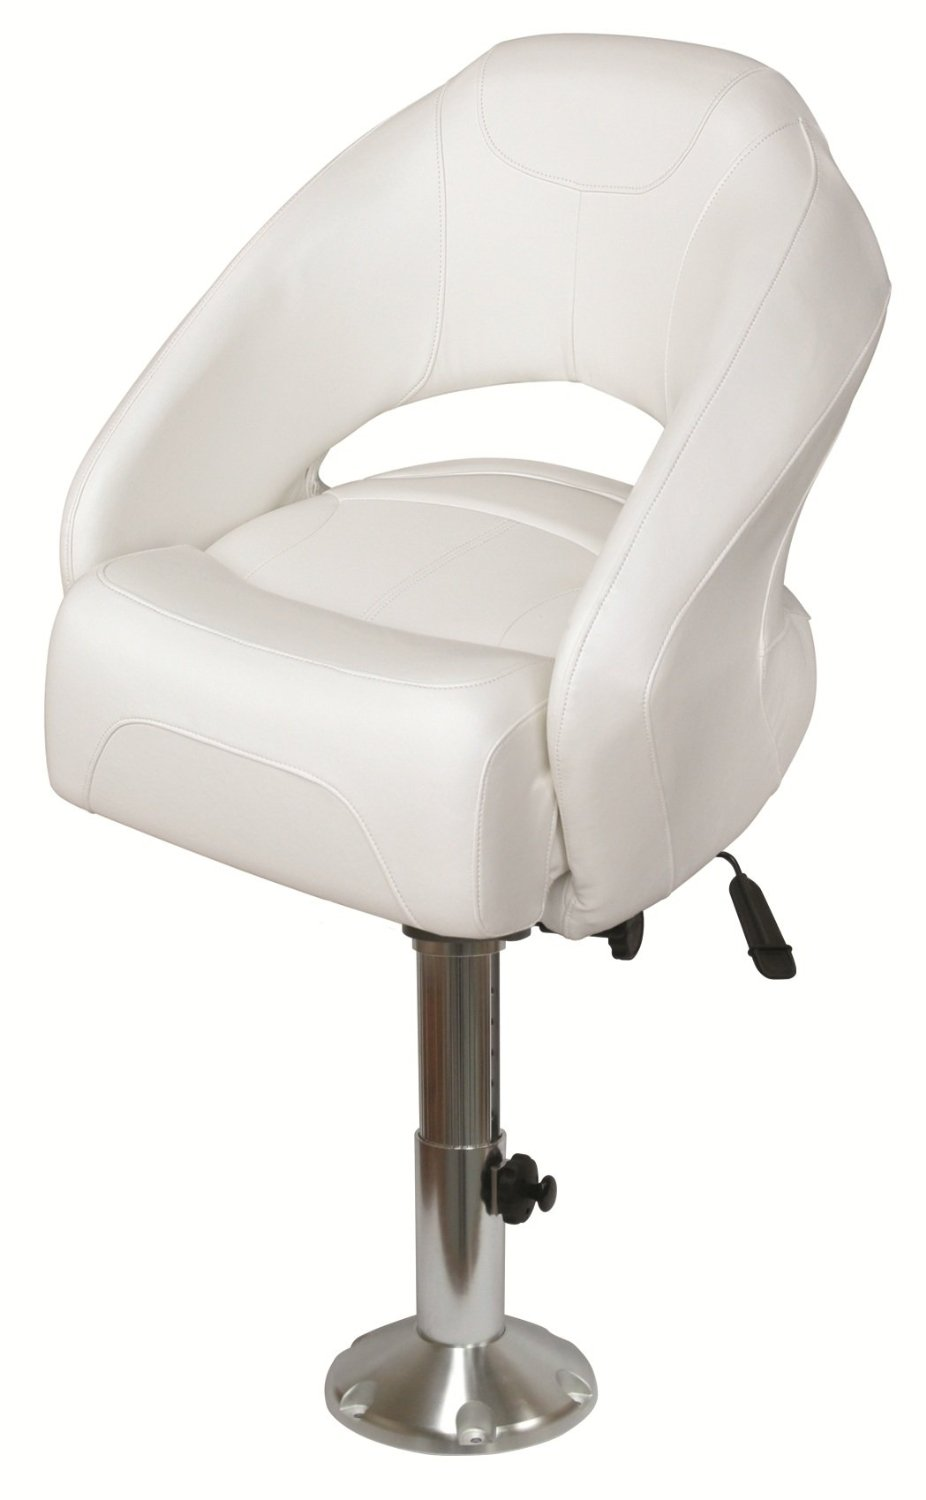 Wise 8WD1217-6-784 Razor Style Flip-Up Bolster Bucket Seat with Adjustable Height Pedestal and Seat Slide, White